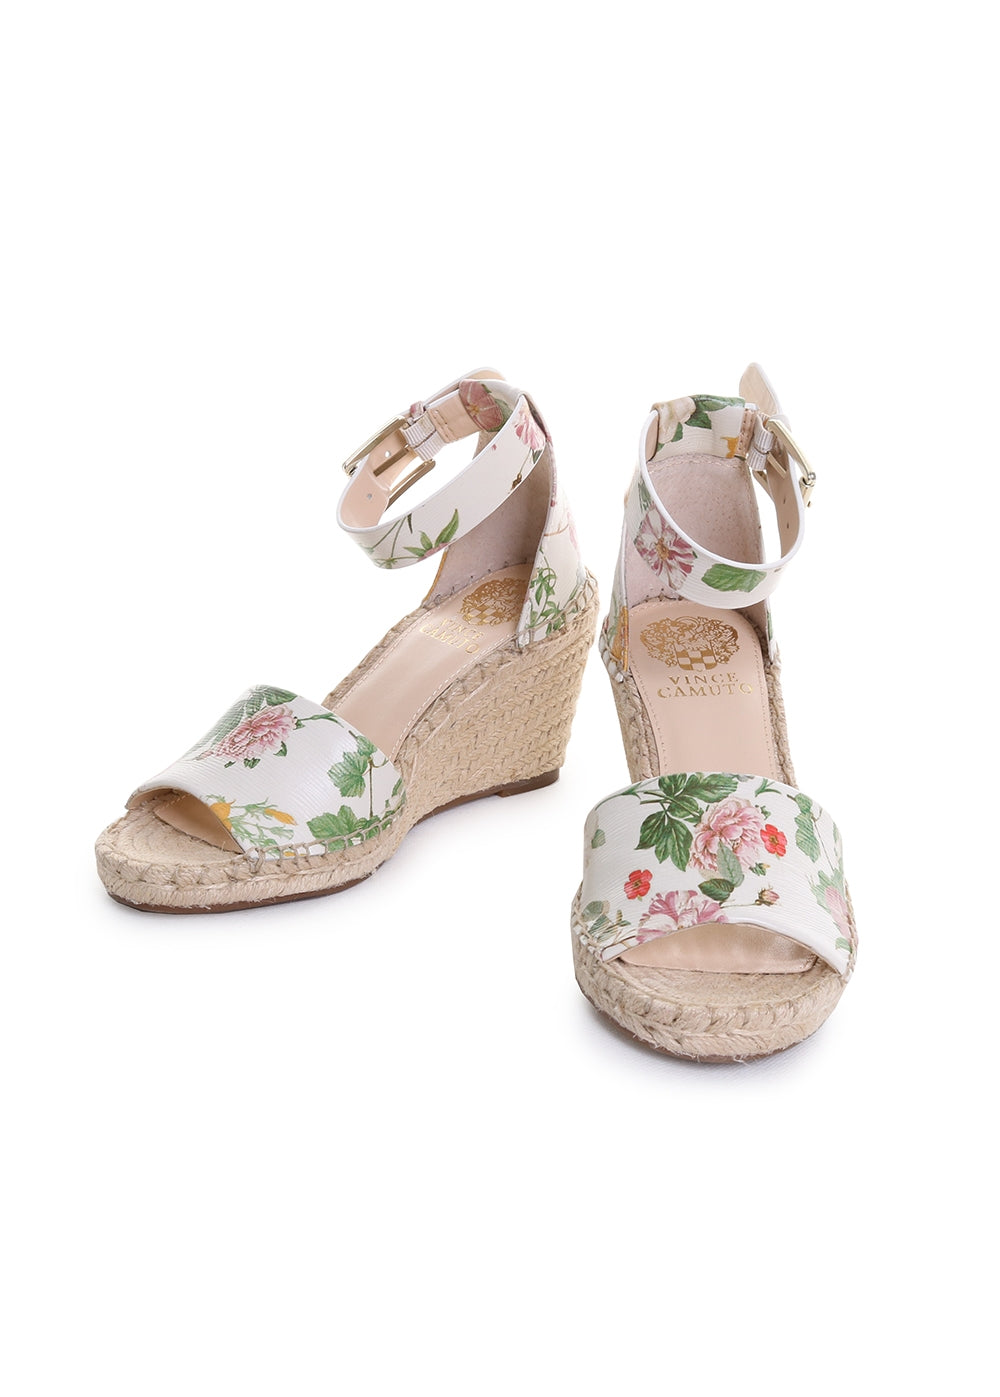 2f830fbb284 Leera Floral Leather Ankle Strap Espadrille Wedge Sandals